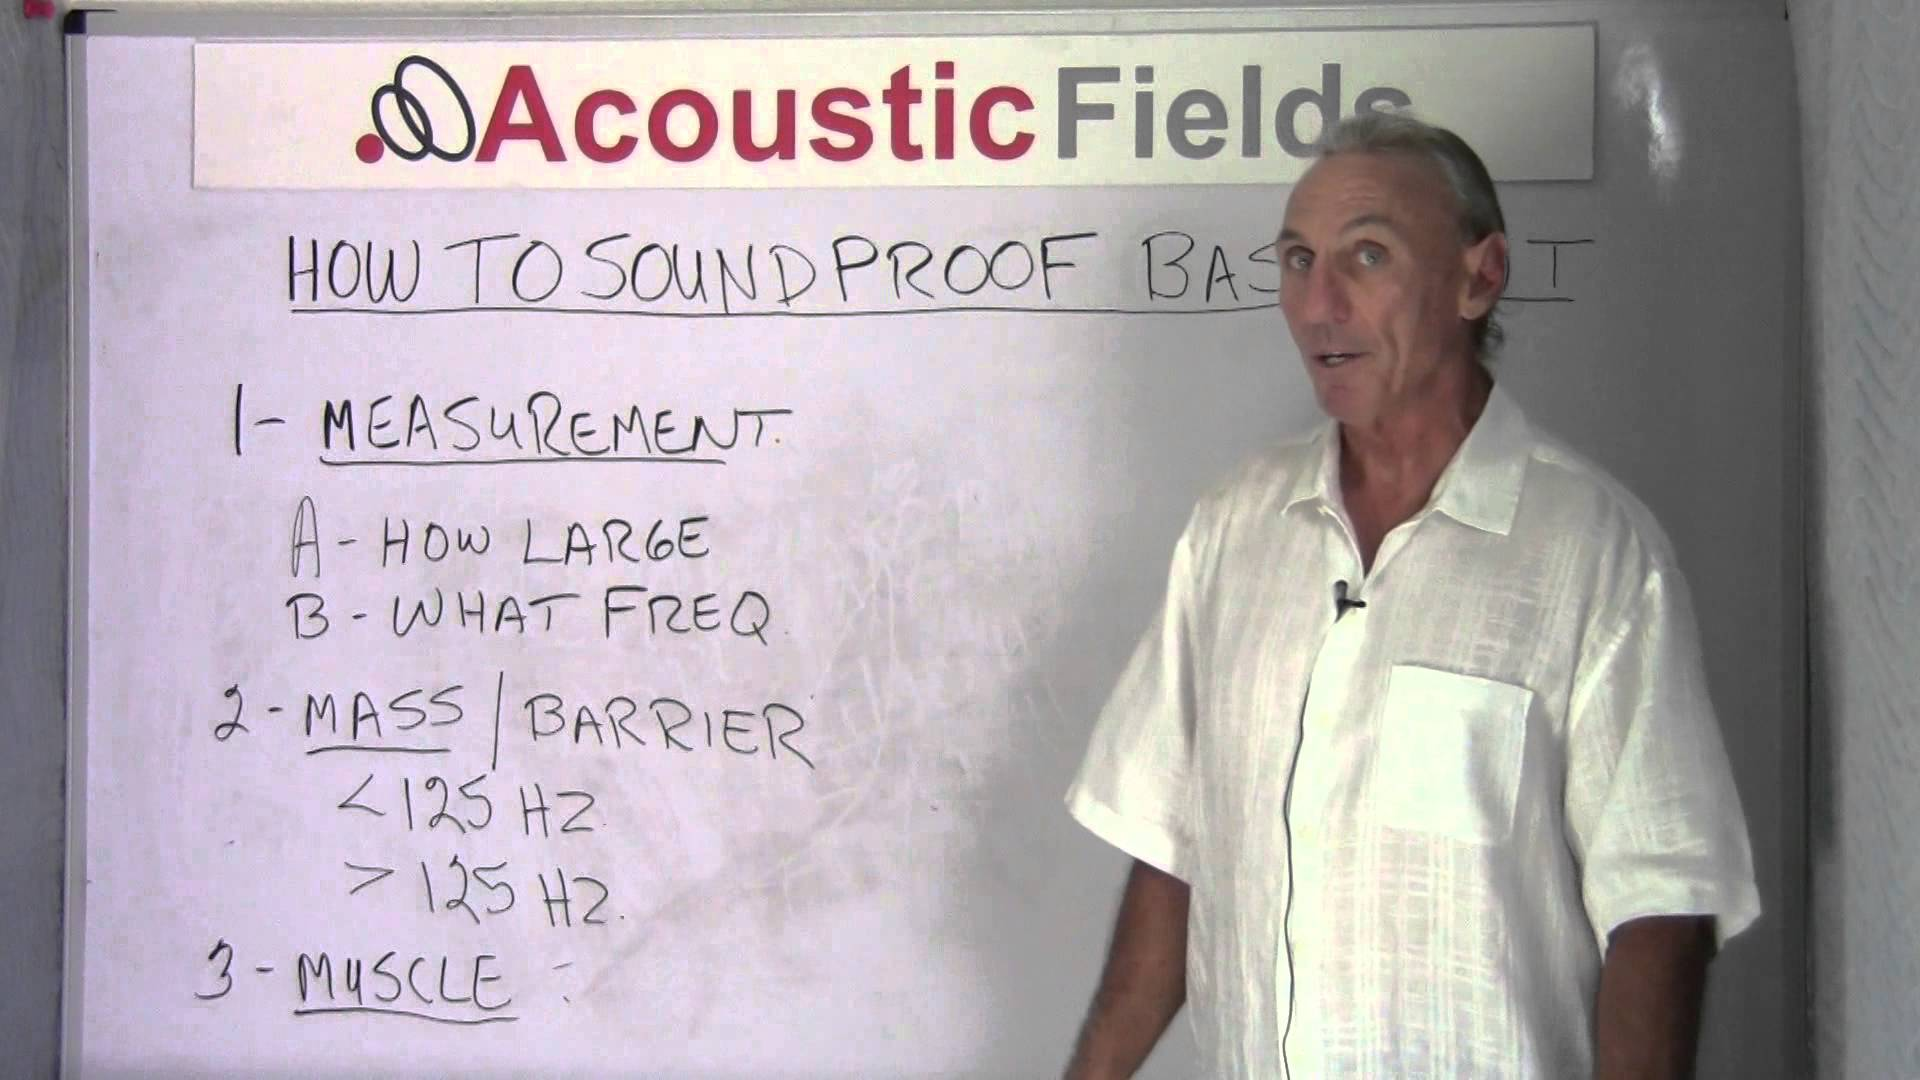 if you want to know how to soundproof a basement you need to